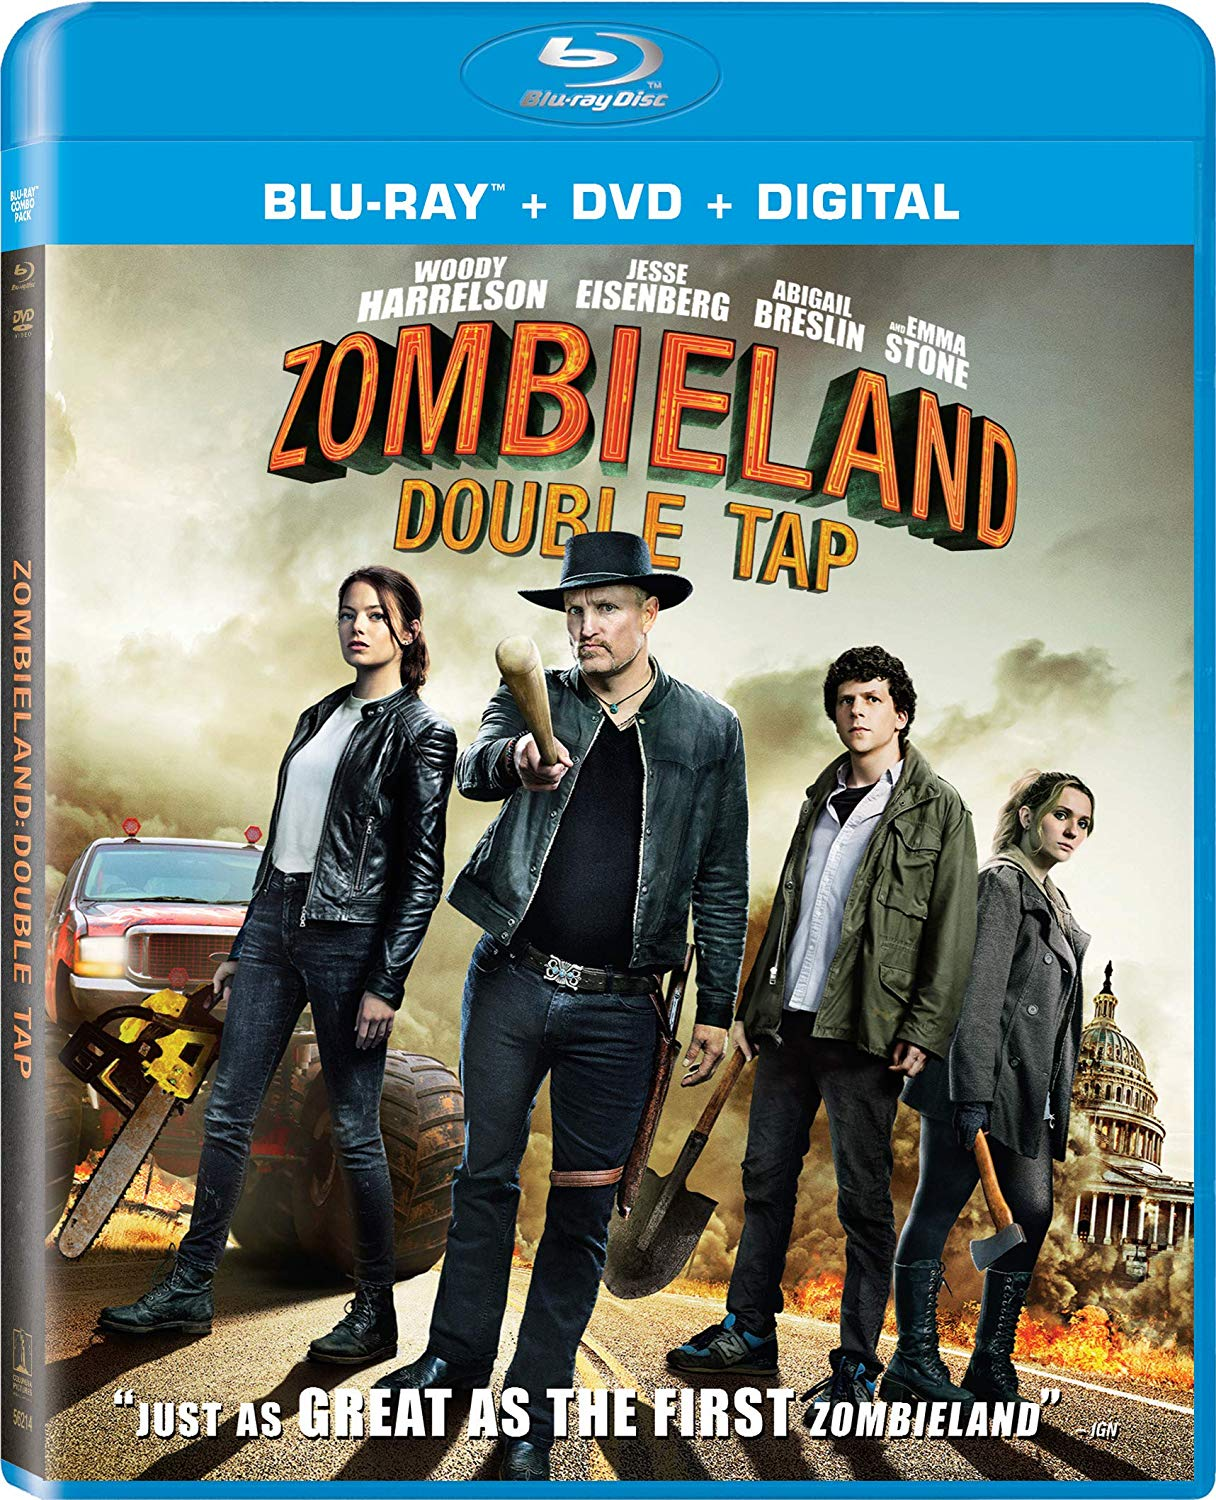 Zombieland: Double Tap Blu-ray